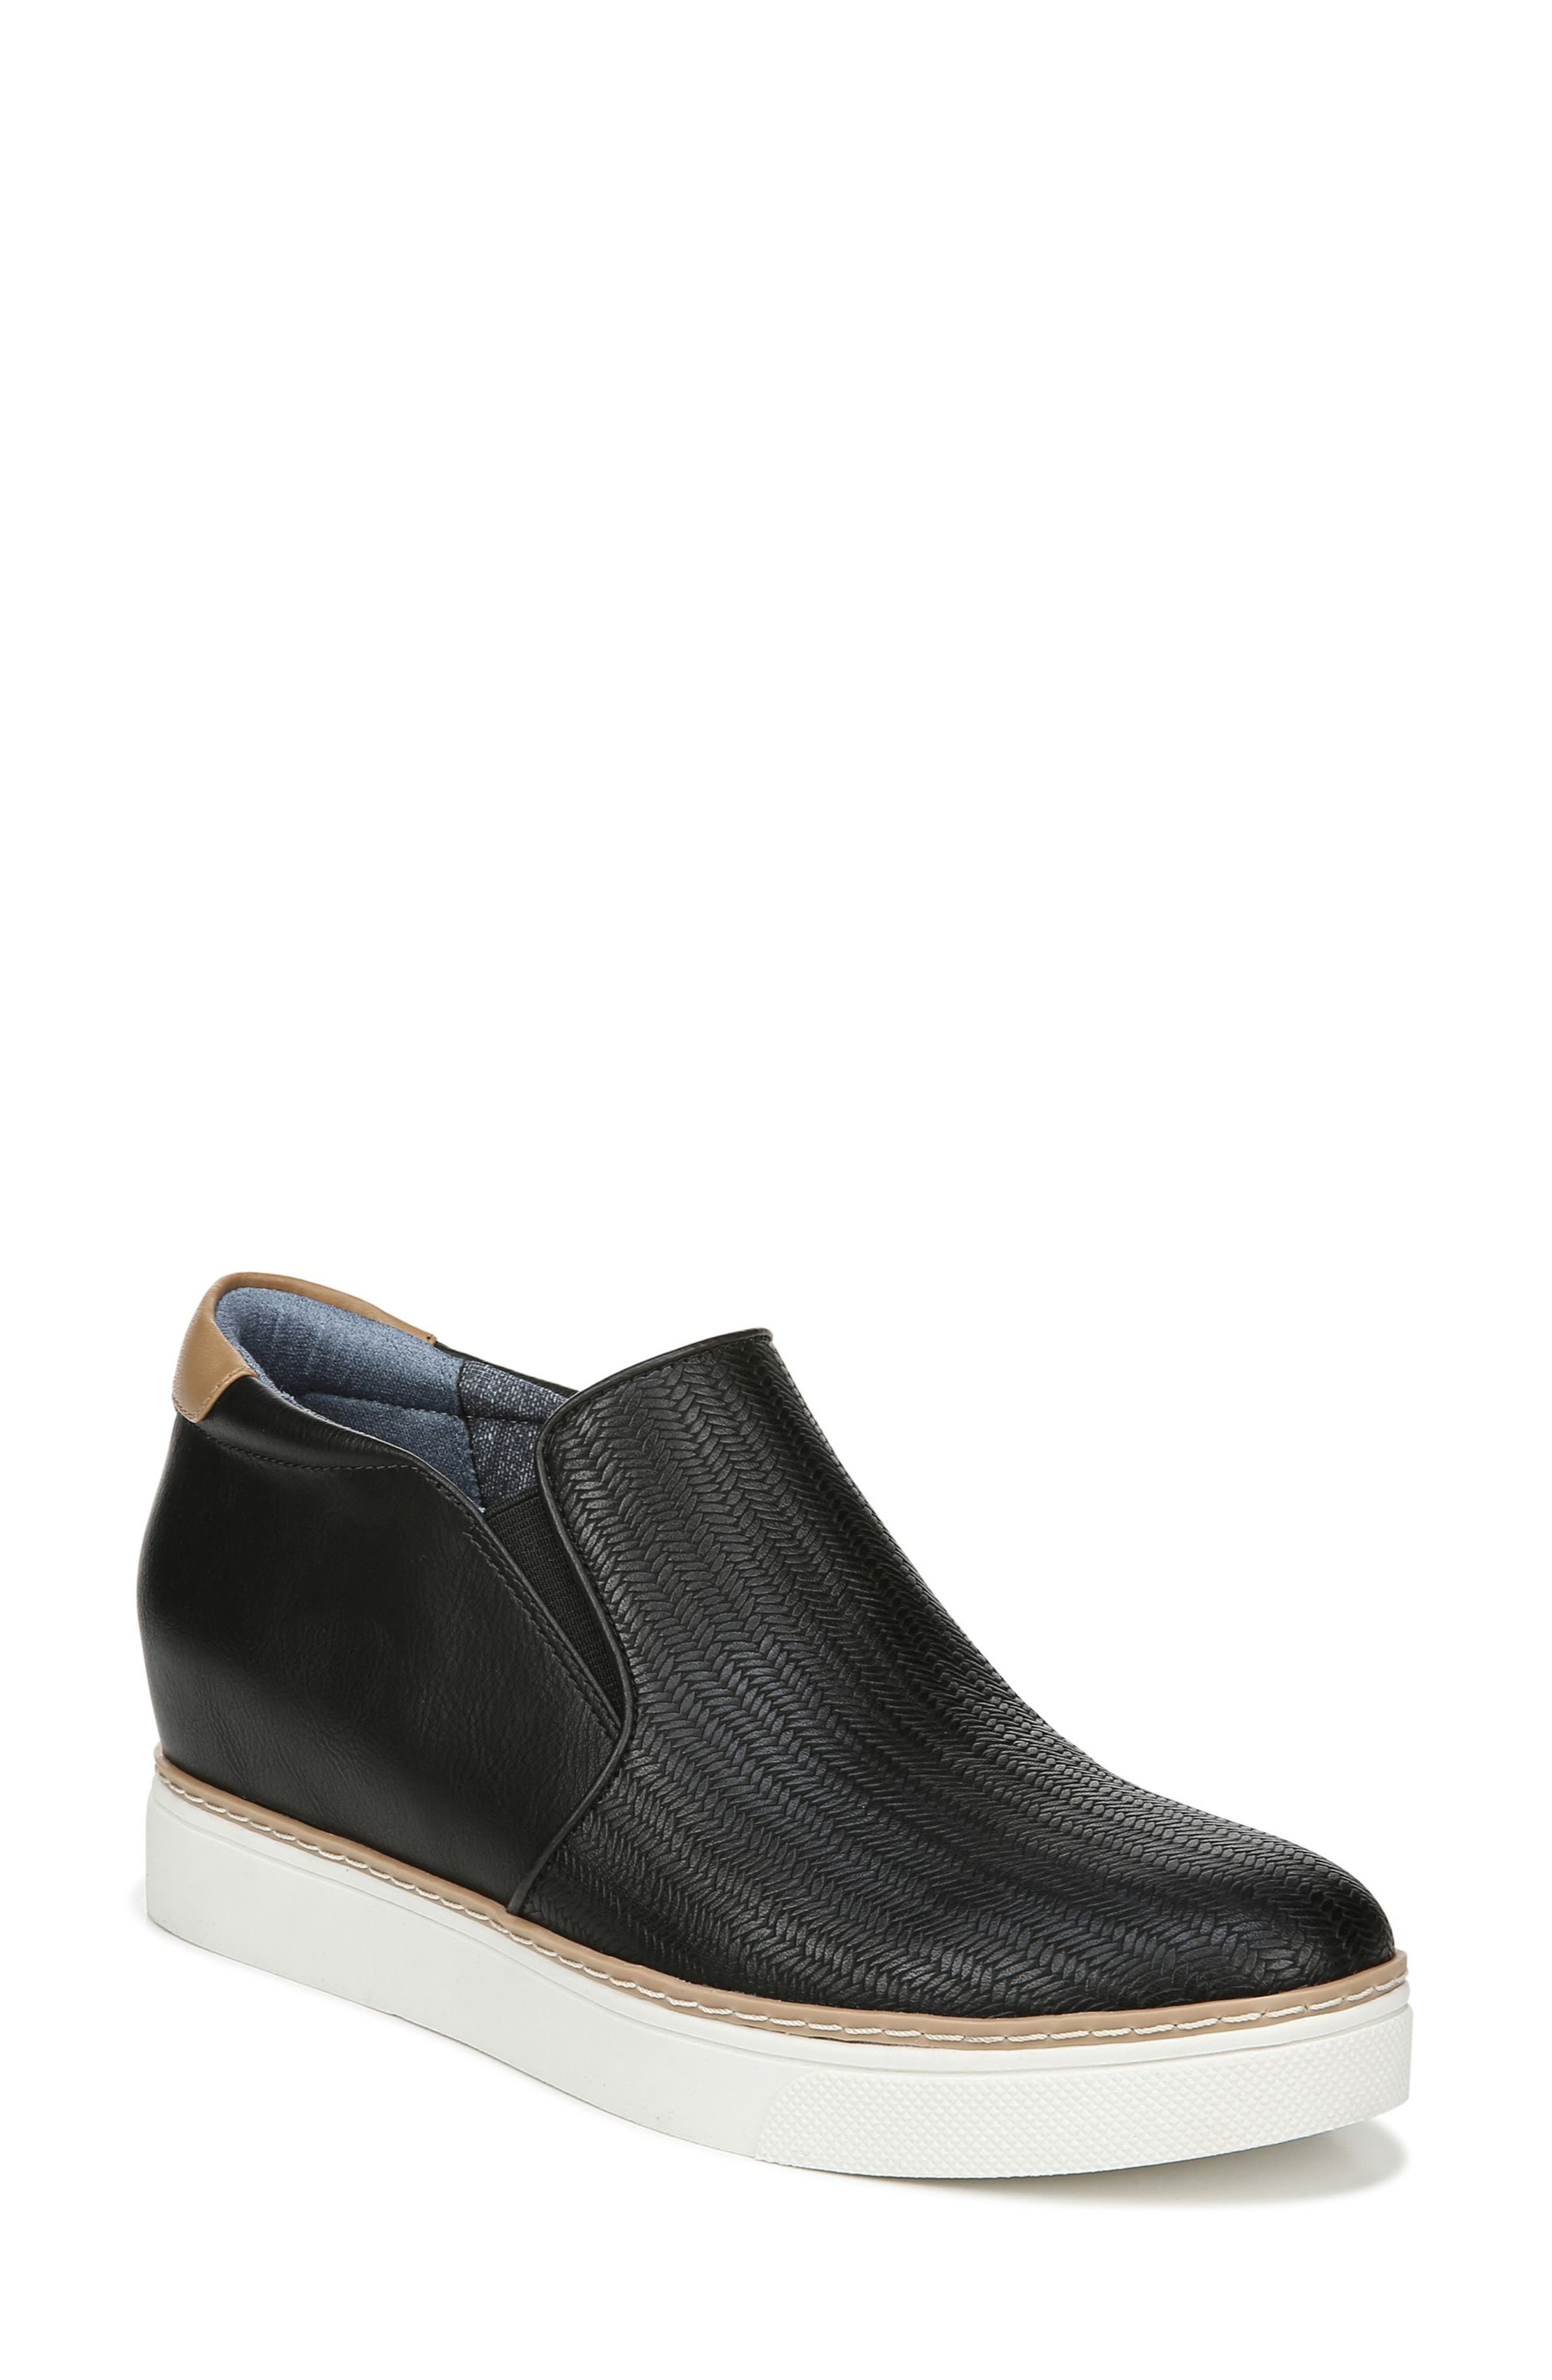 If Only Wedge Bootie